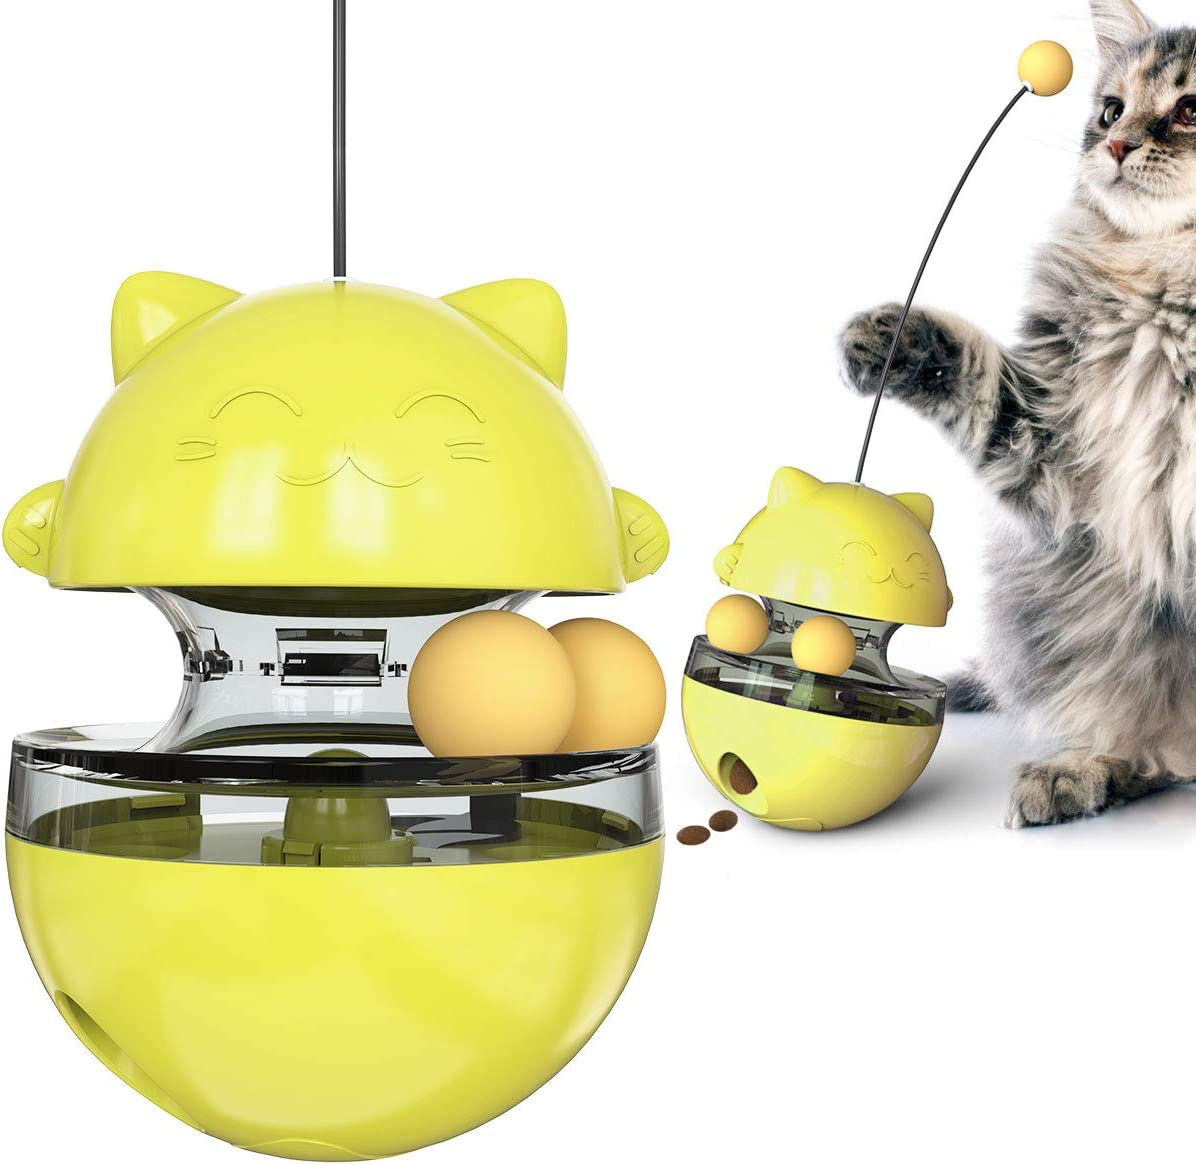 USWT Cat Toys Kitten Toy Cats Supplies Interactive Automatic No-Electronic Move for Indoor Cats with Ball